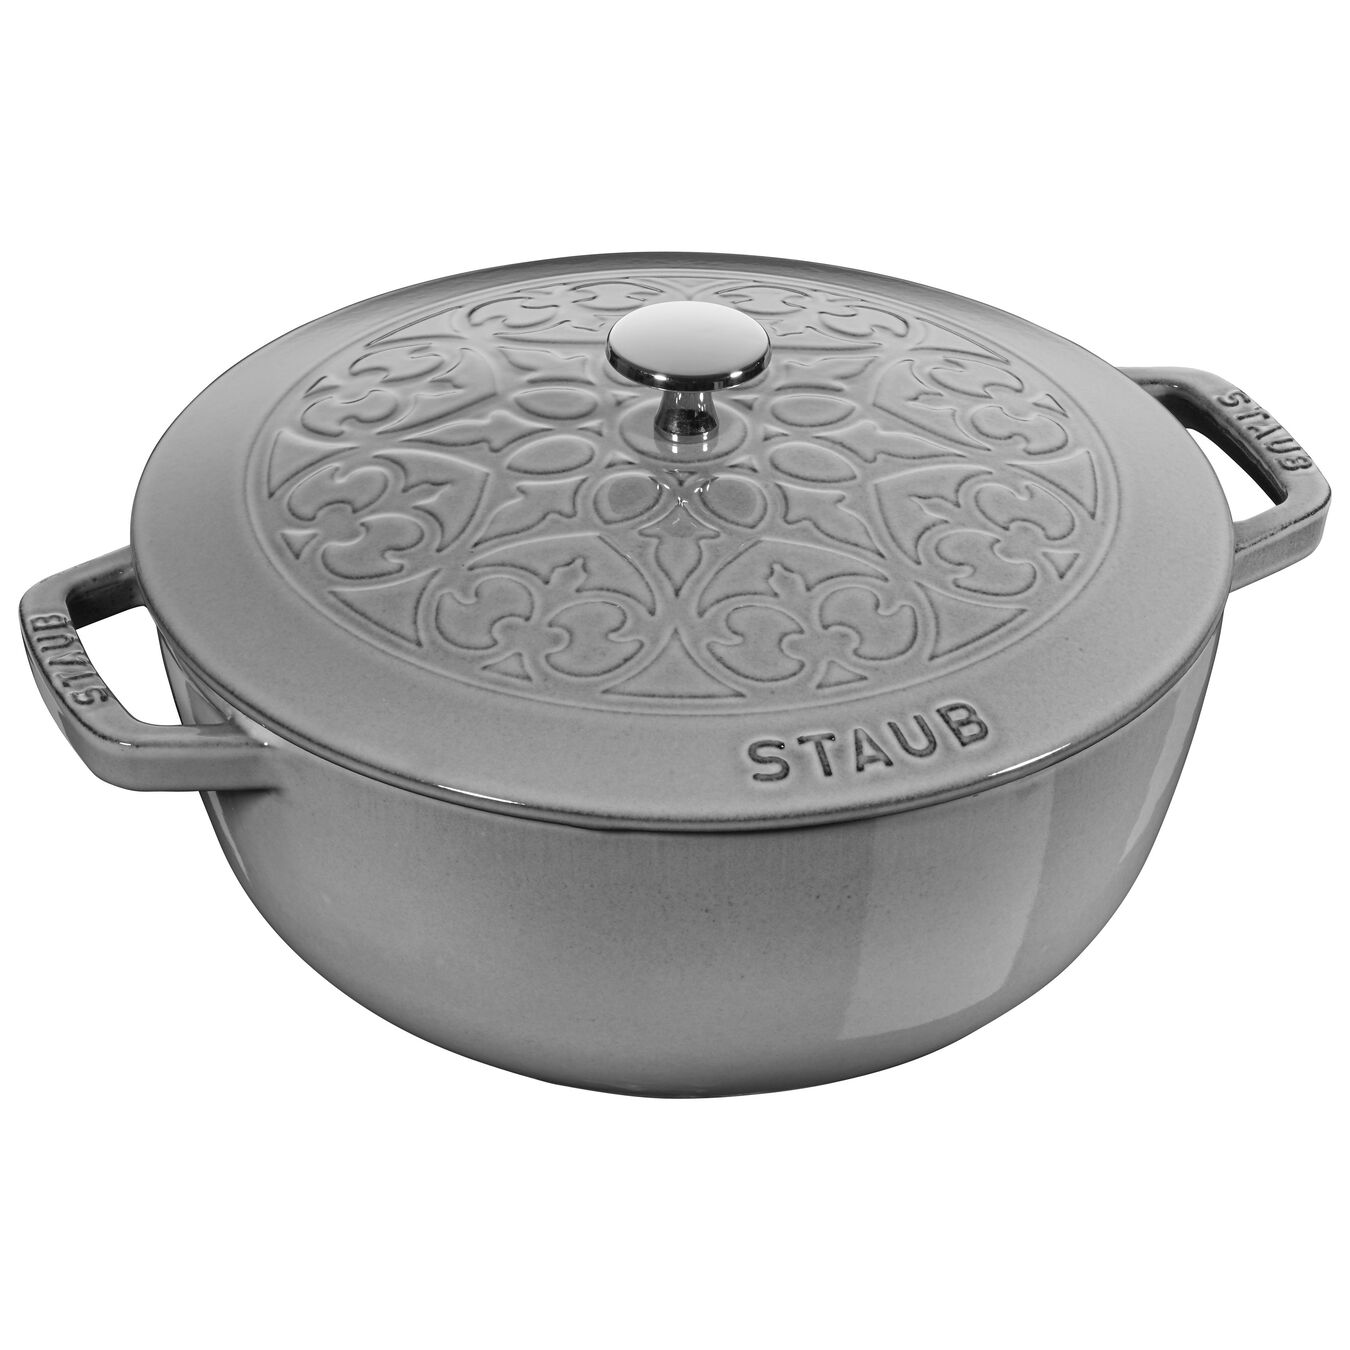 3.5 l round French Oven, lily decal, graphite-grey,,large 1